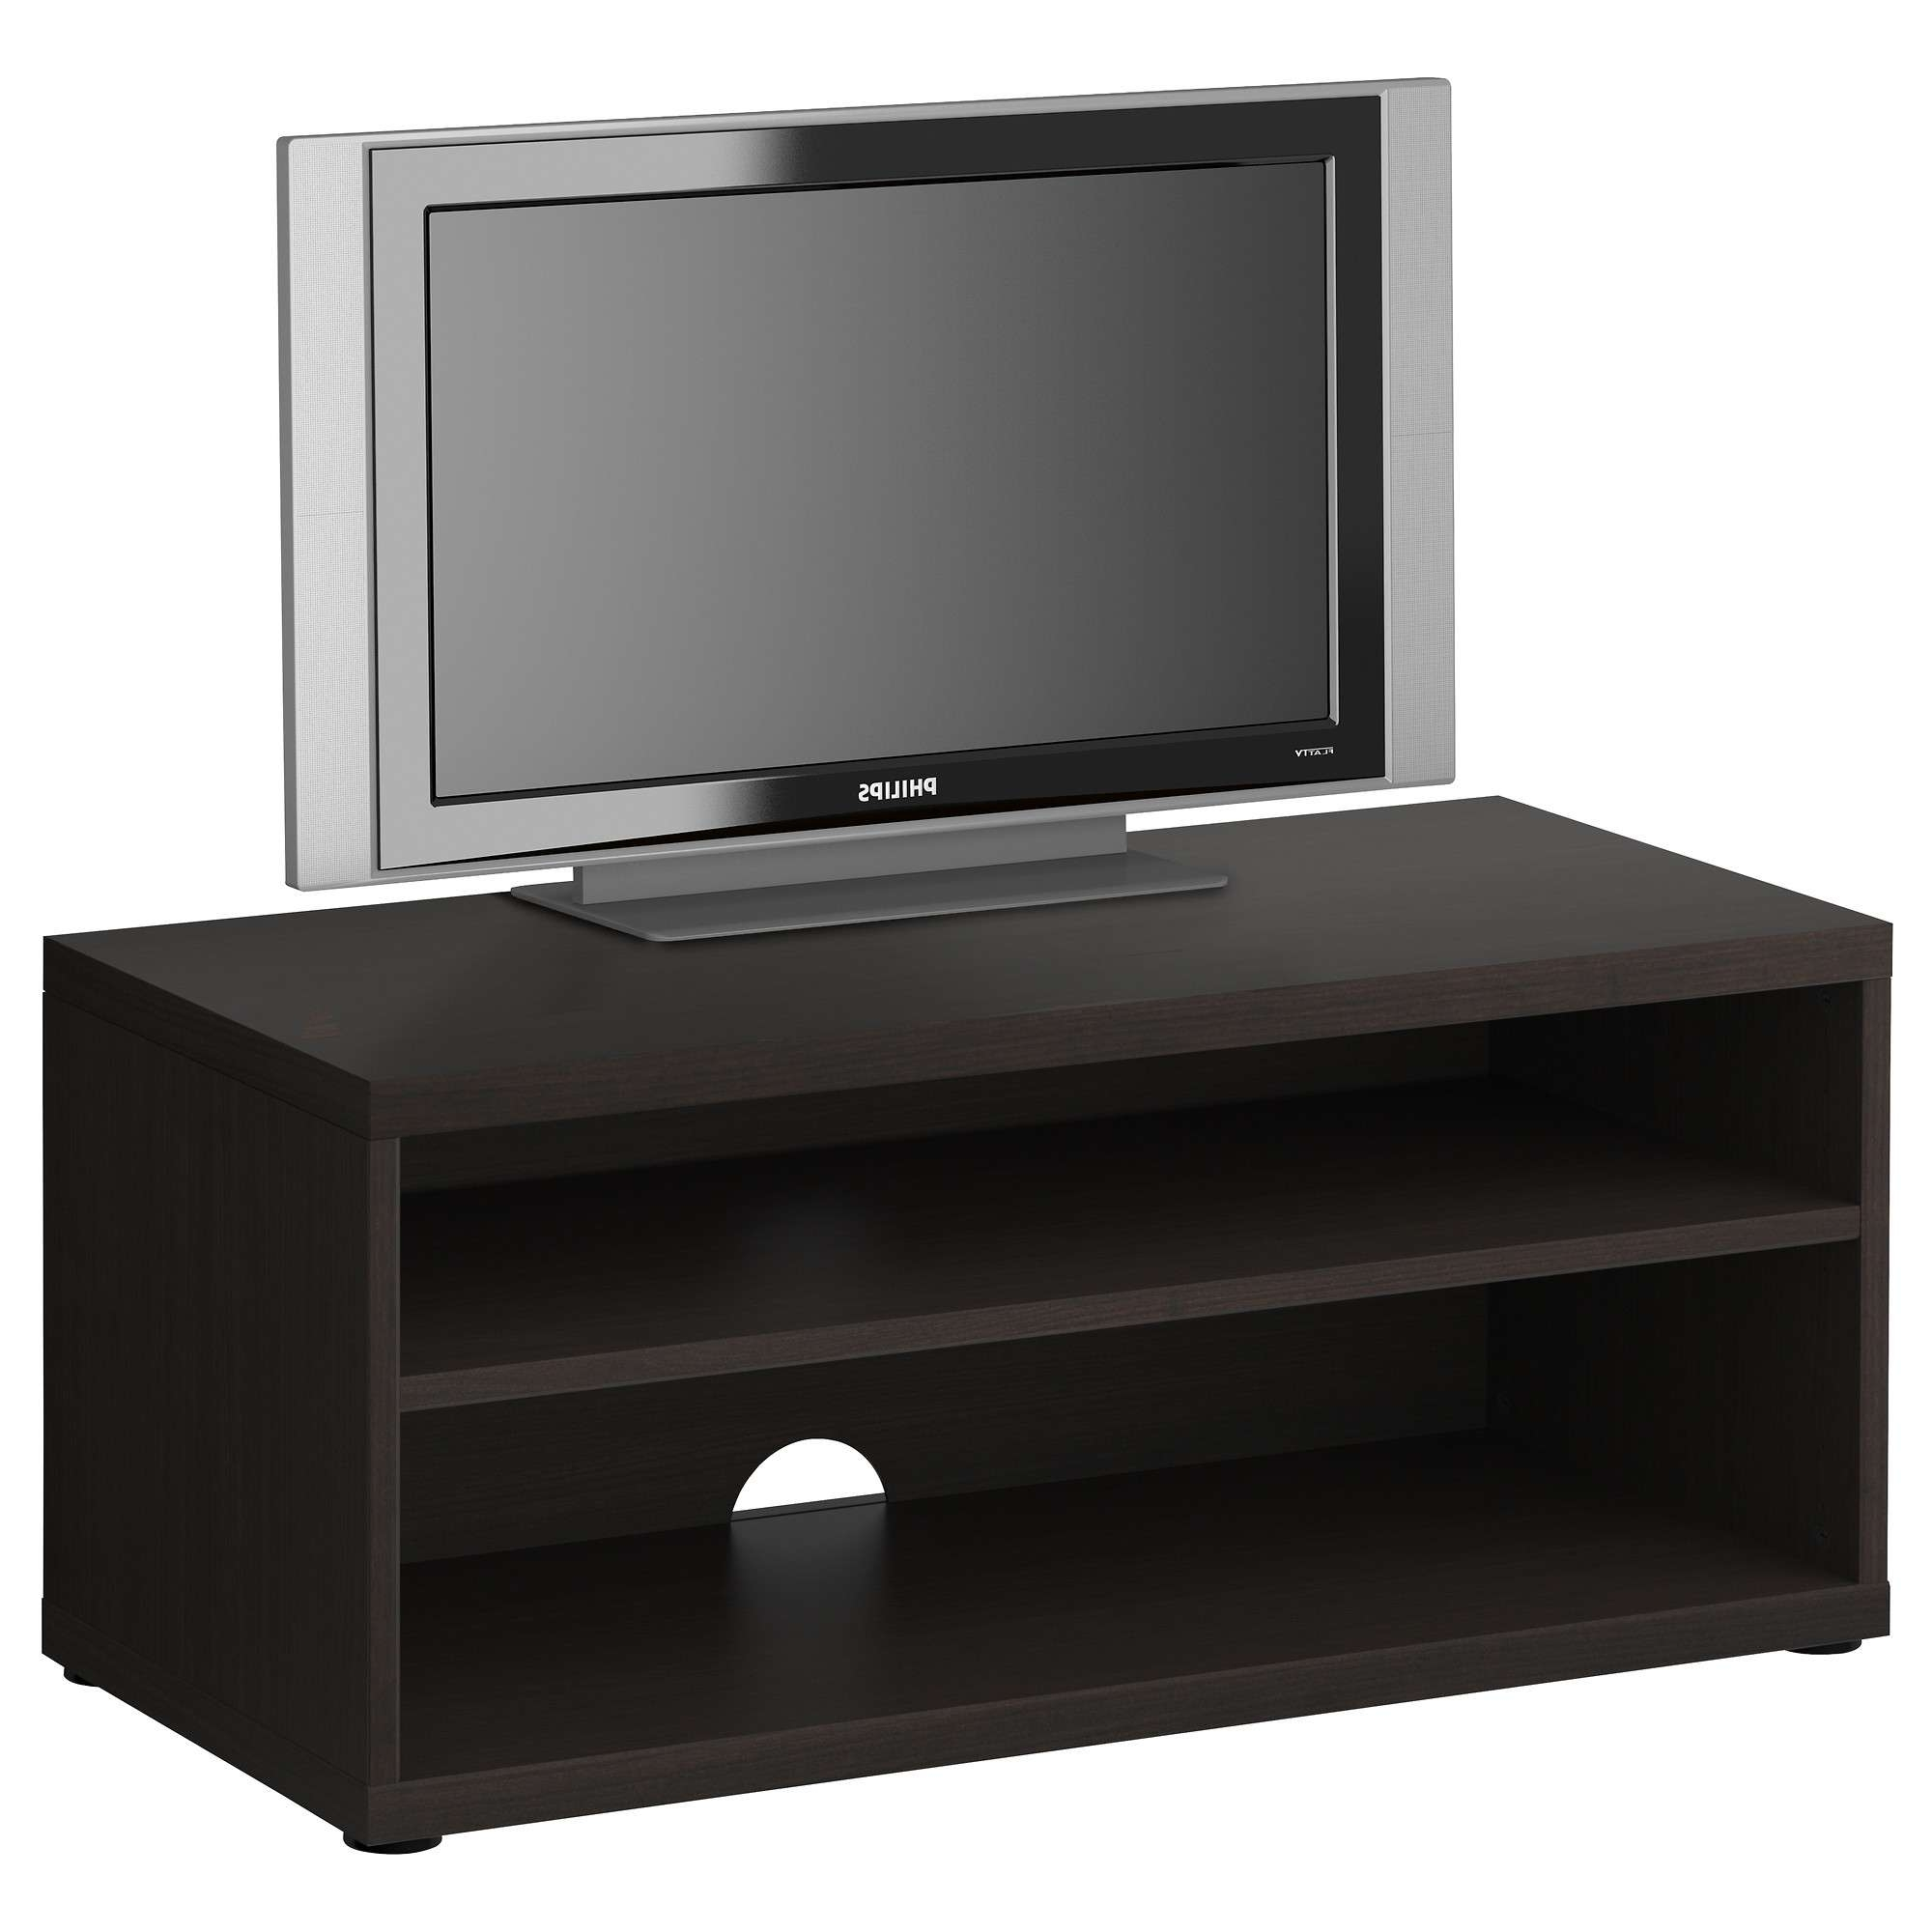 Tv Stands & Tv Units | Ikea With Regard To Black Tv Cabinets With Drawers (View 11 of 20)